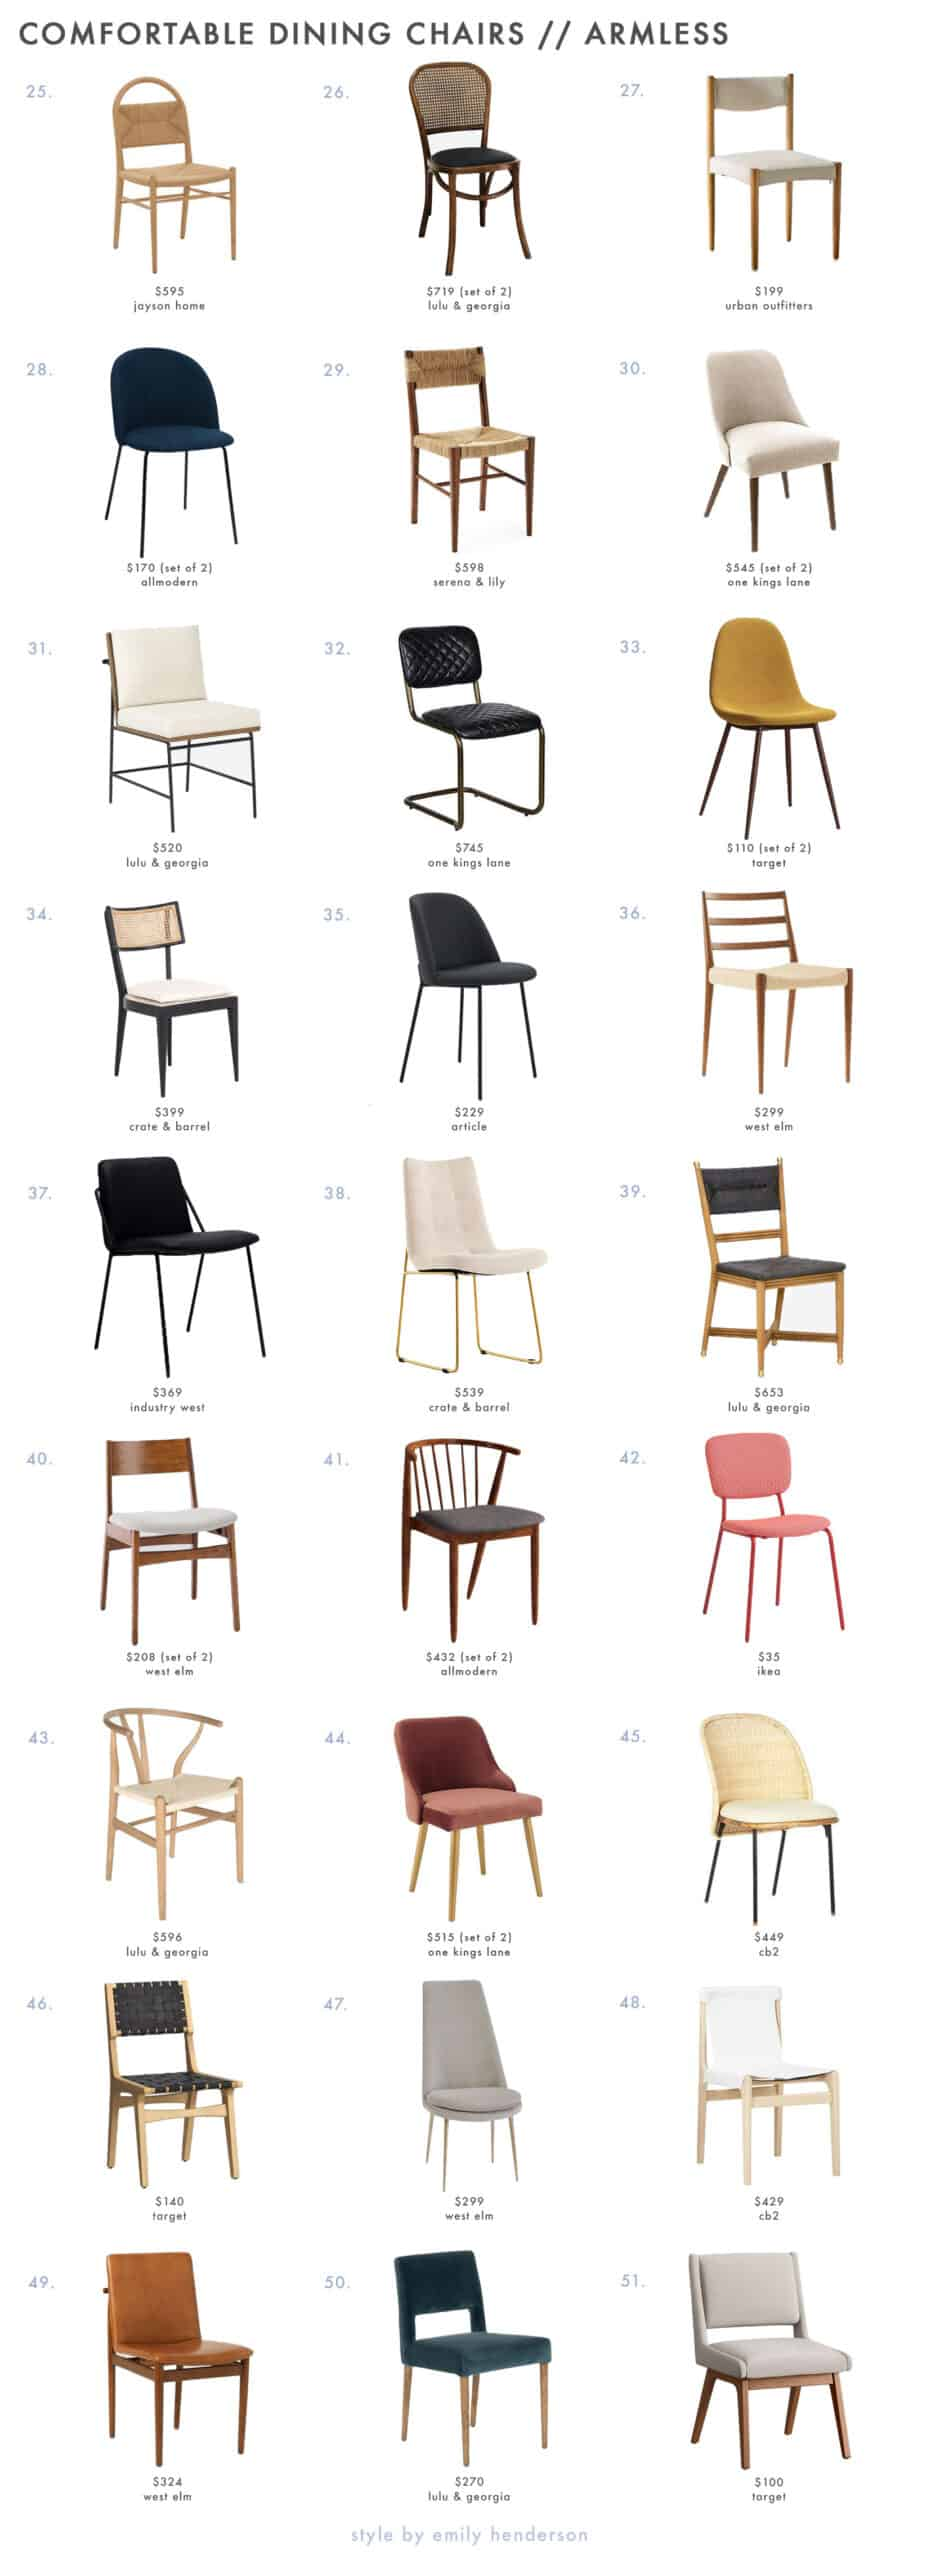 Picture of: 93 Dining Chairs That Meet All Your Comfort Needs Rules For Picking Them Out Emily Henderson